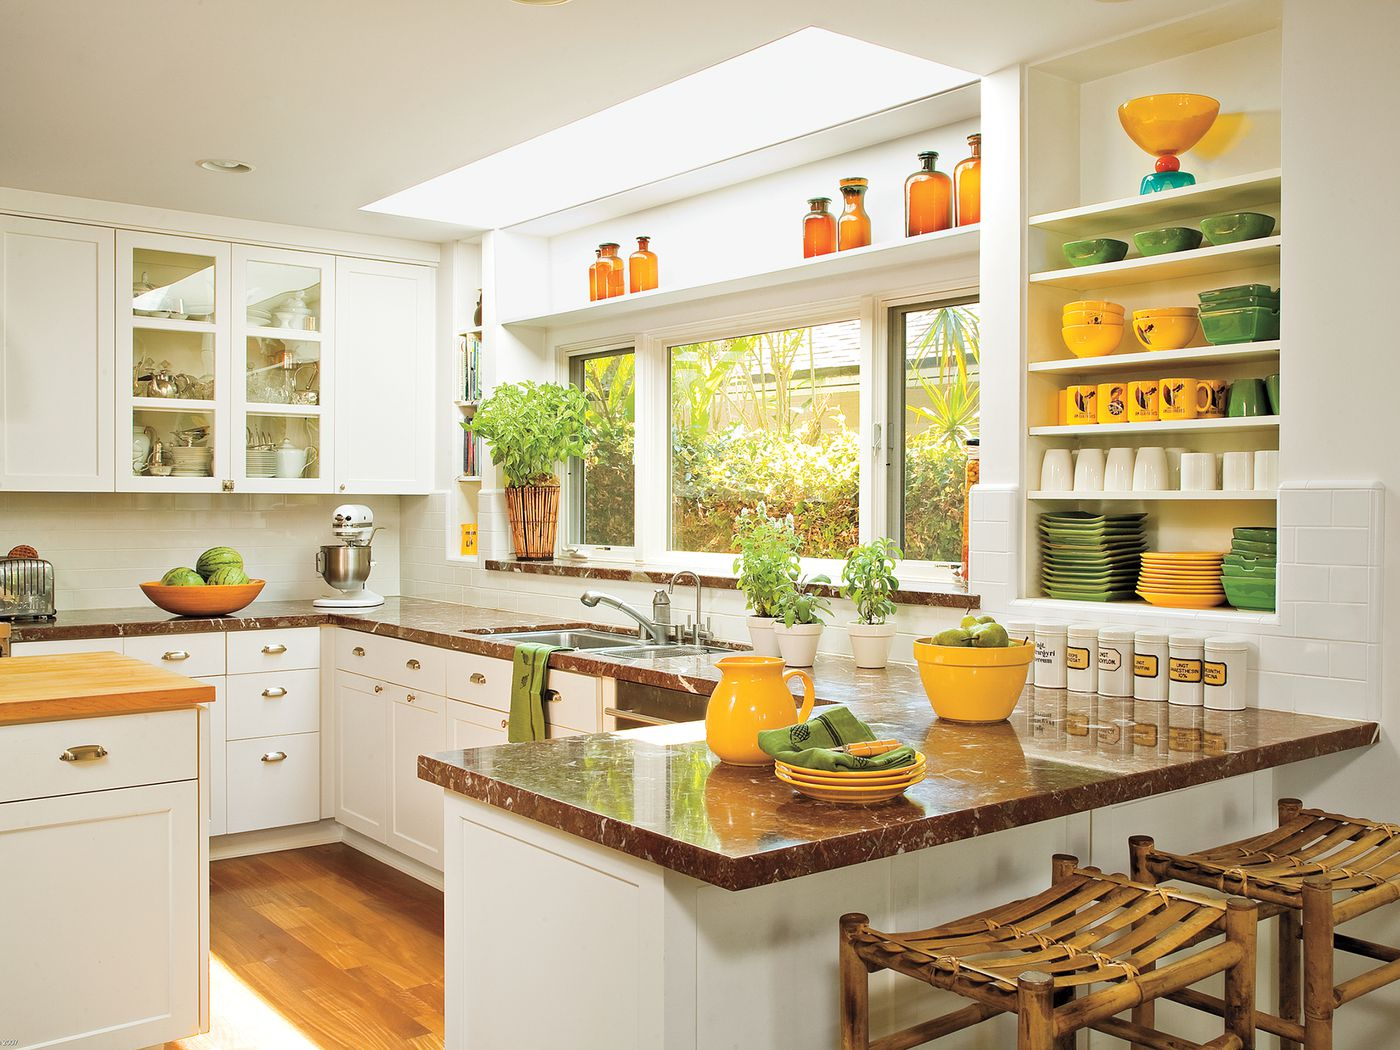 Simple Kitchen Design, Timeless Style - This Old House